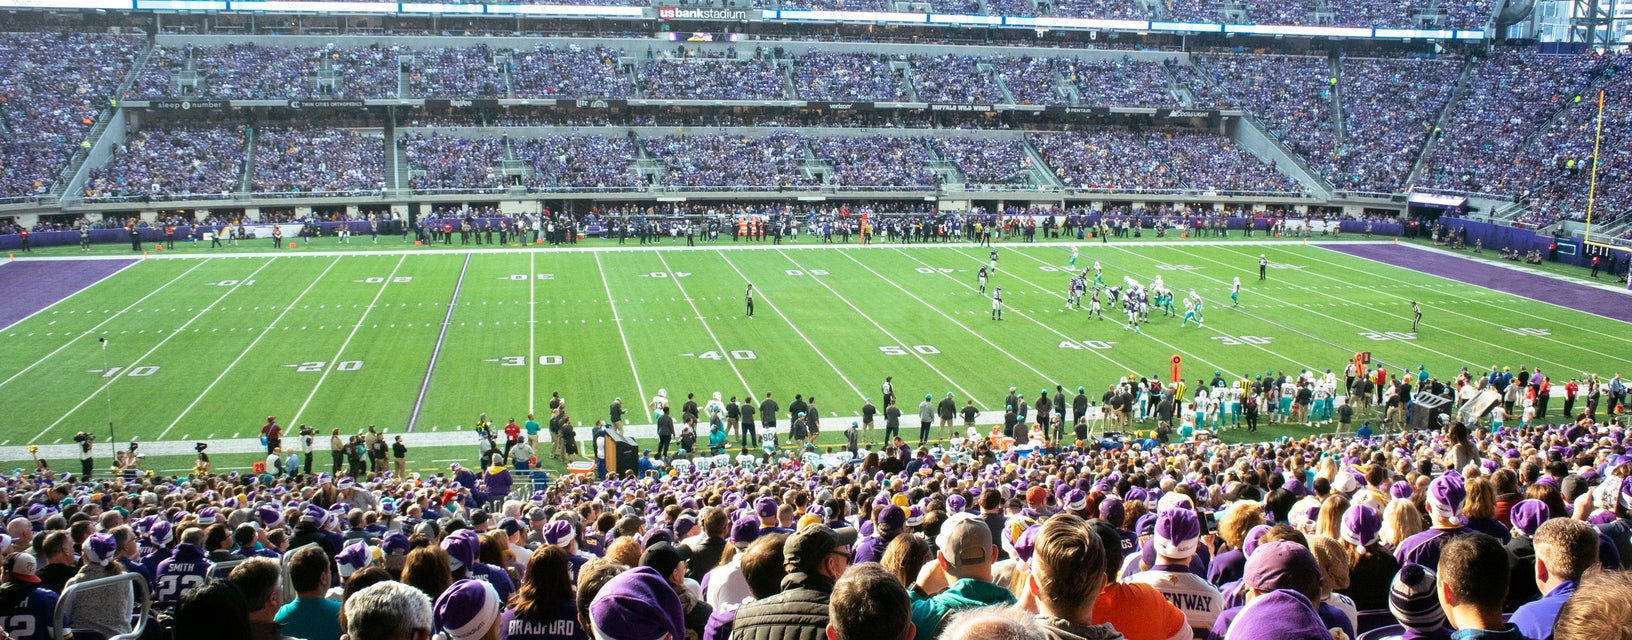 Seat view from Vikings Club